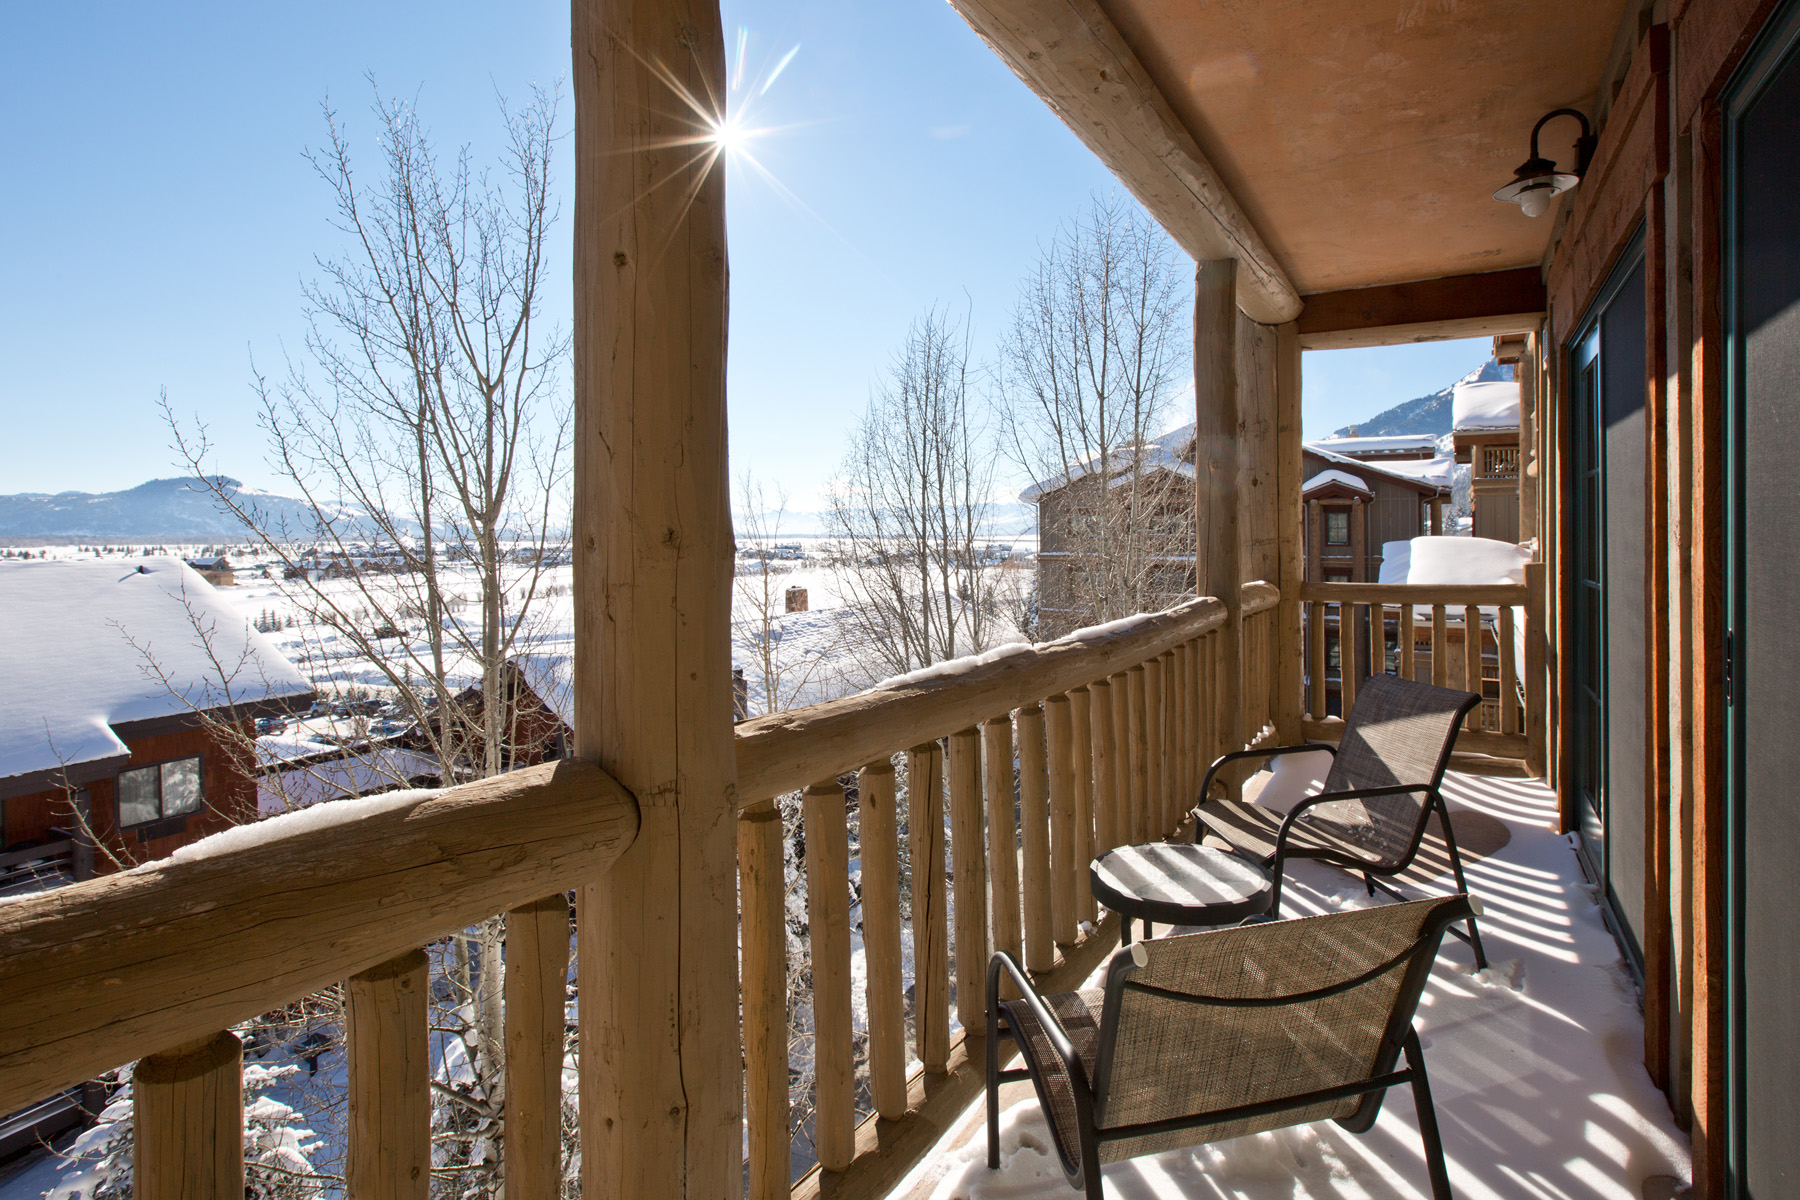 sales property at 2 bdrm/ 2 bath condo in Teton Village